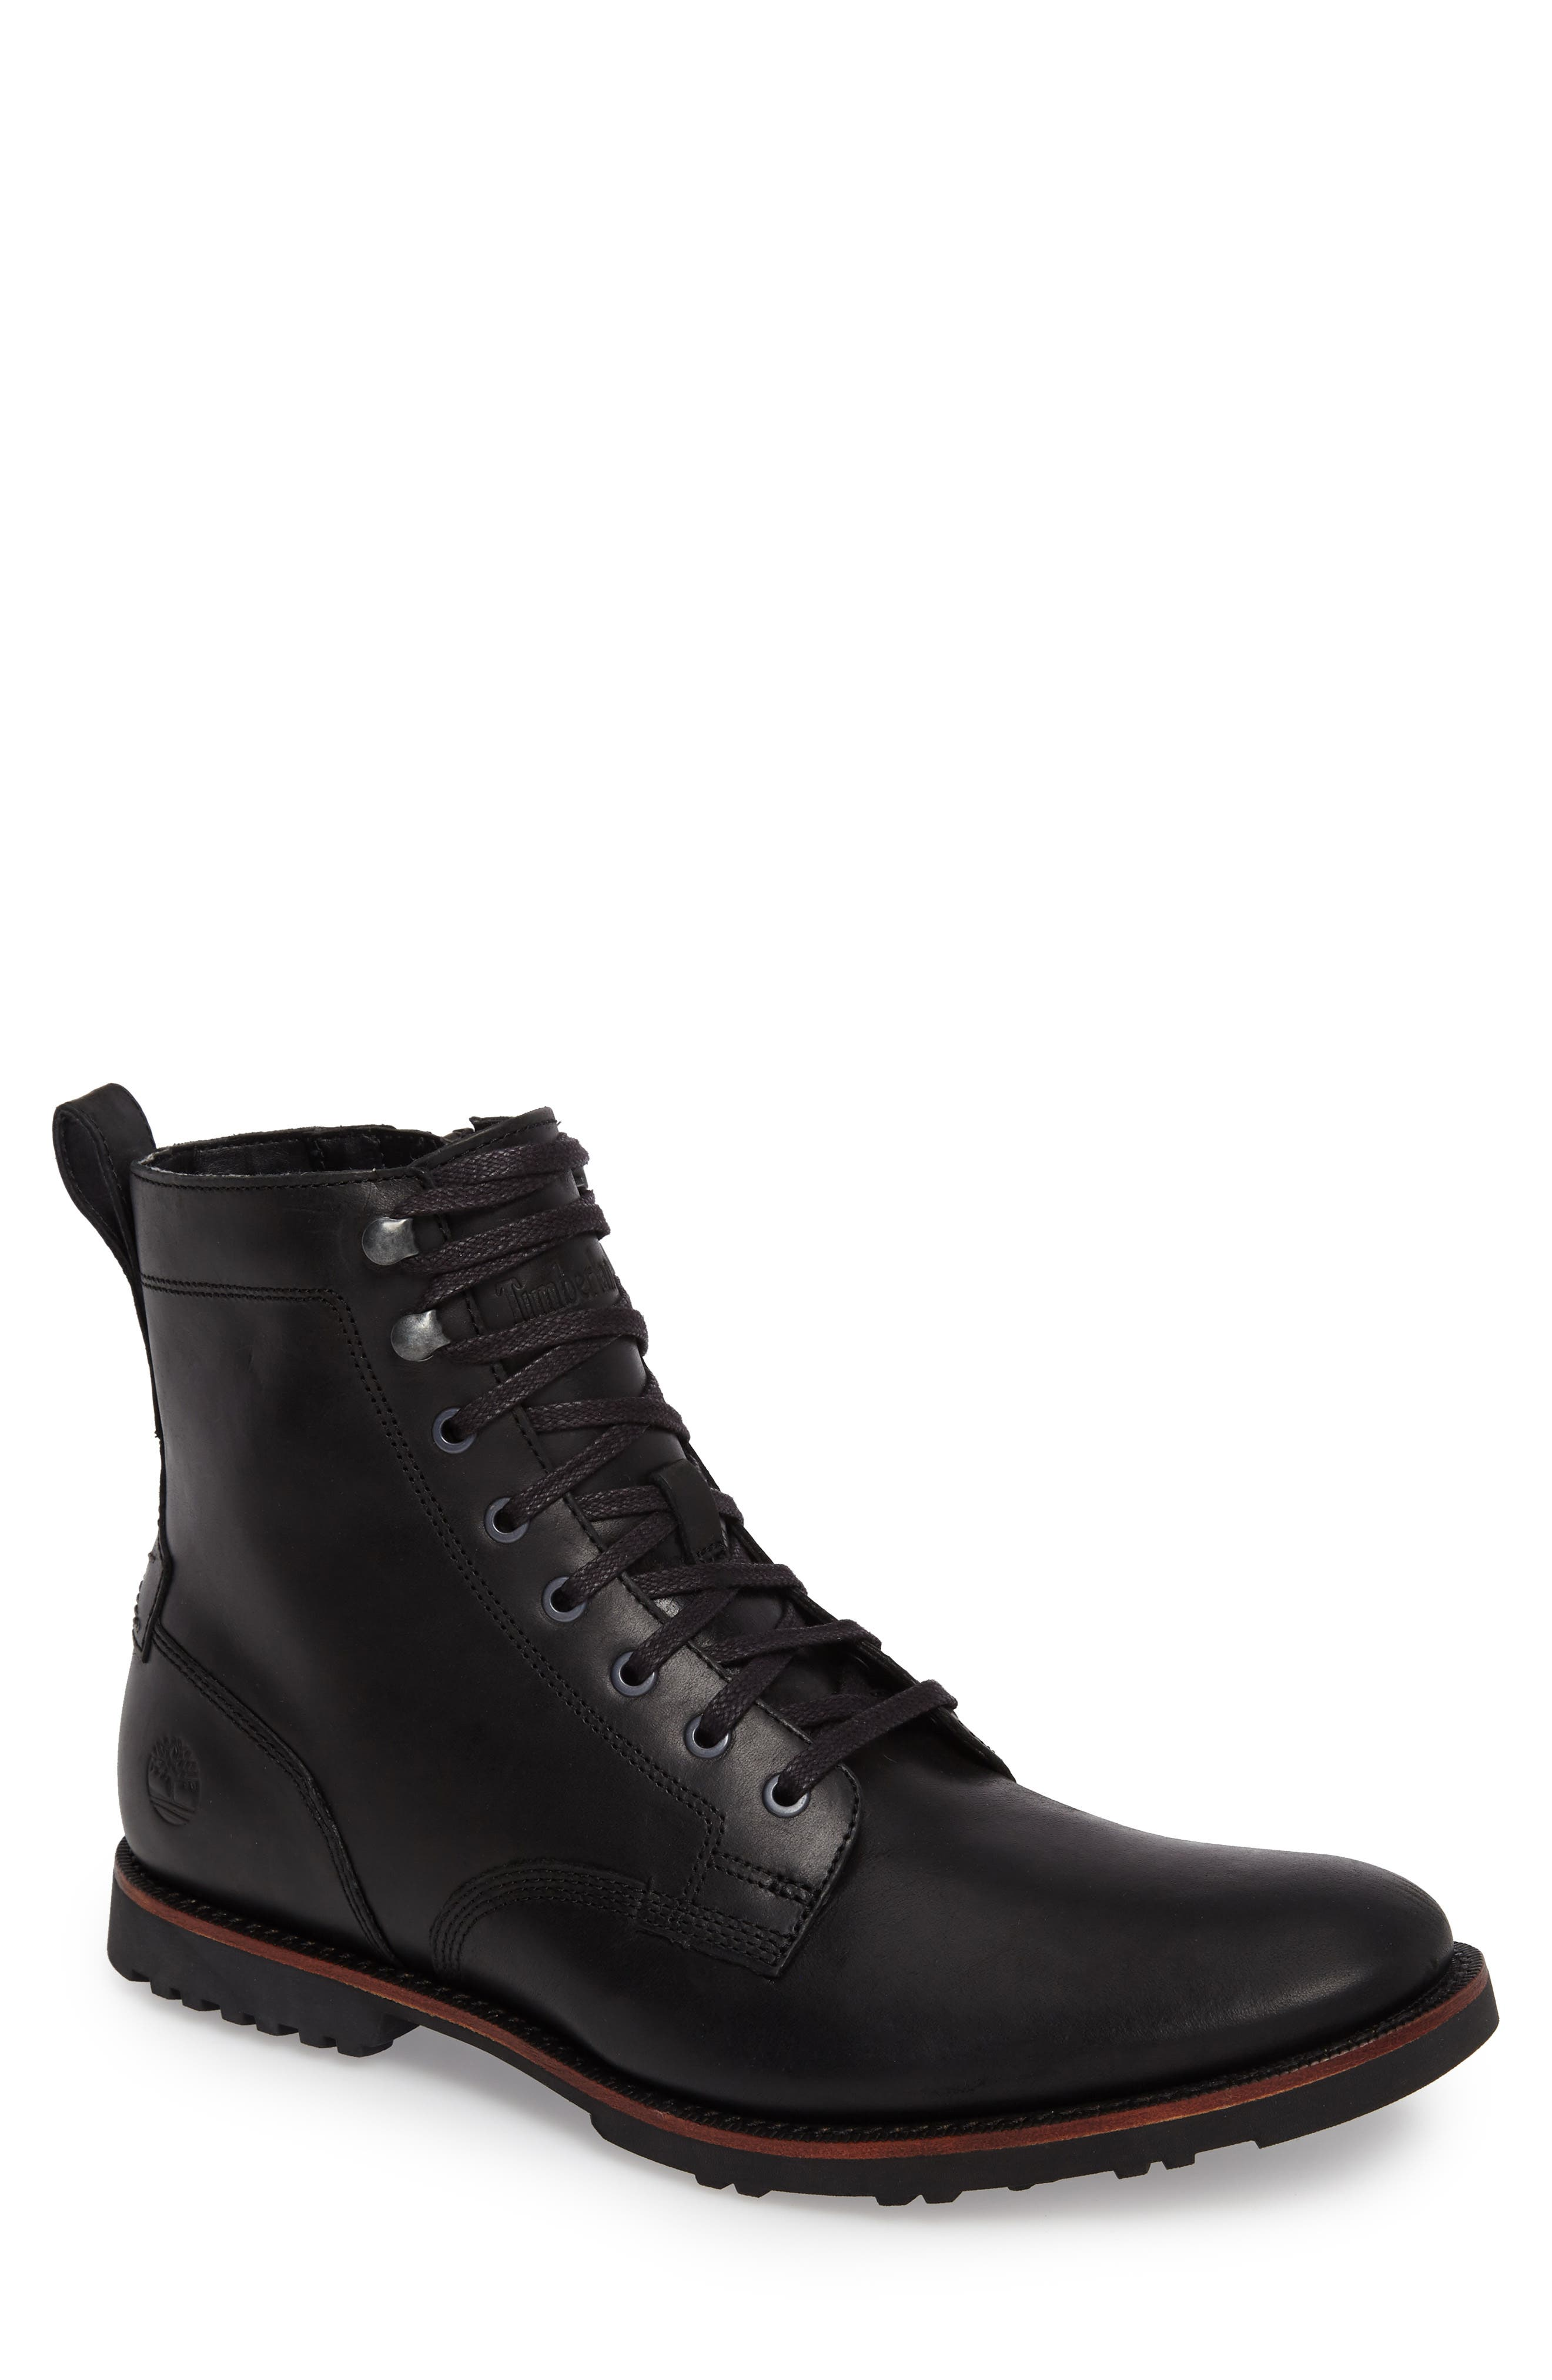 Main Image - Timberland Kendrick Side Zip Leather Boot (Men)